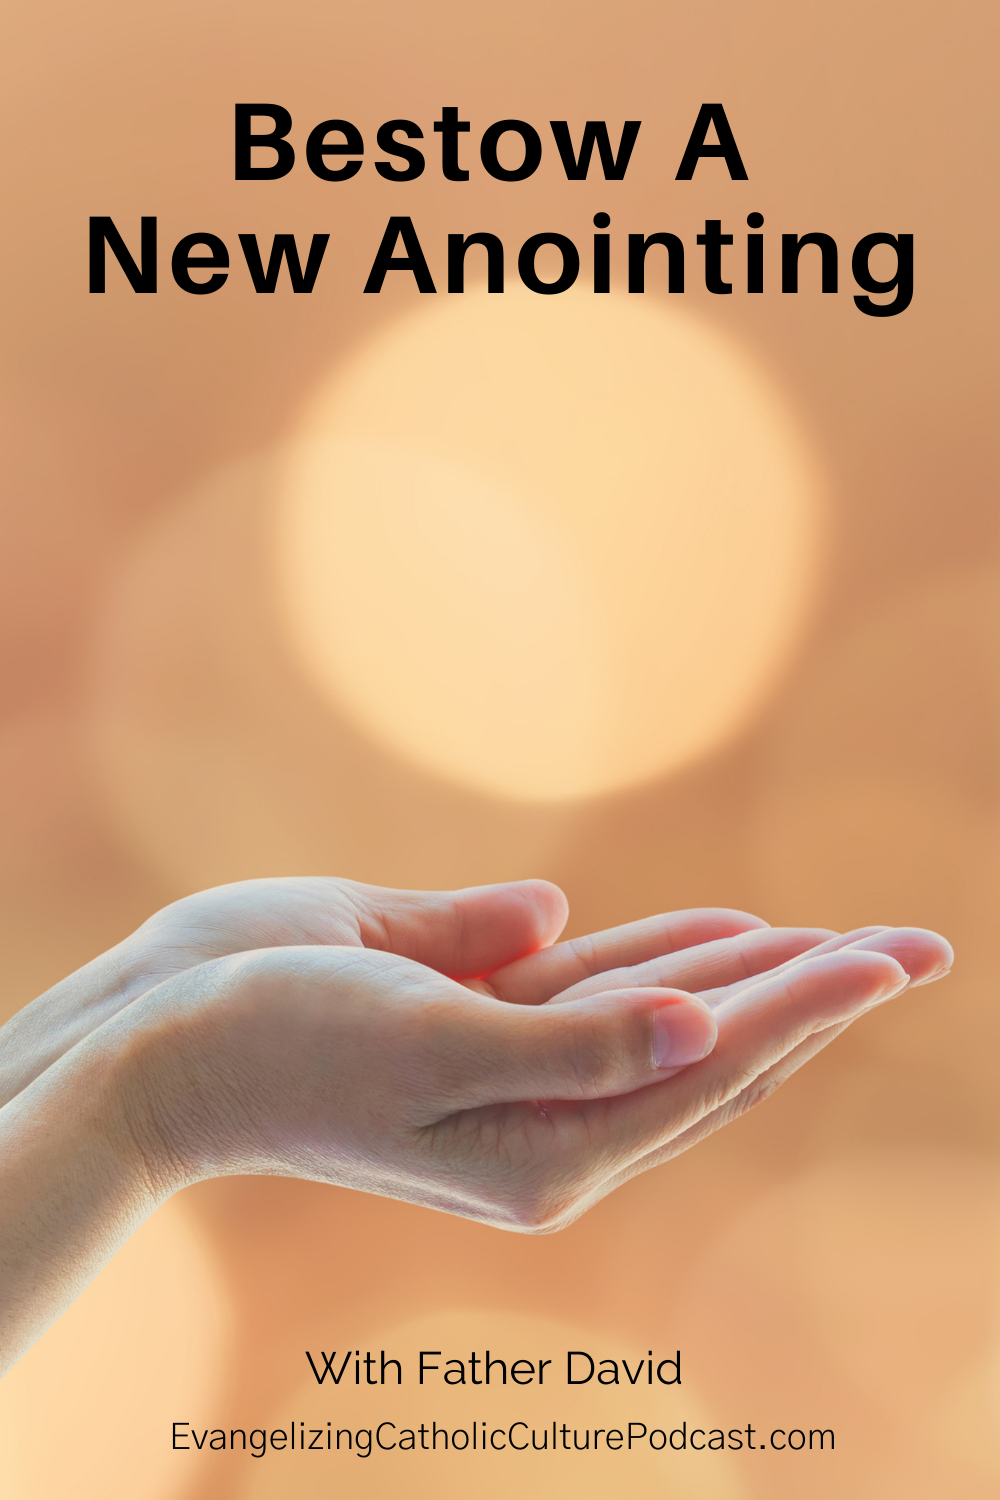 Bestow a New Anointing - The next two podcast shows are probably the most important ones that will appear in my podcast listings or shows.